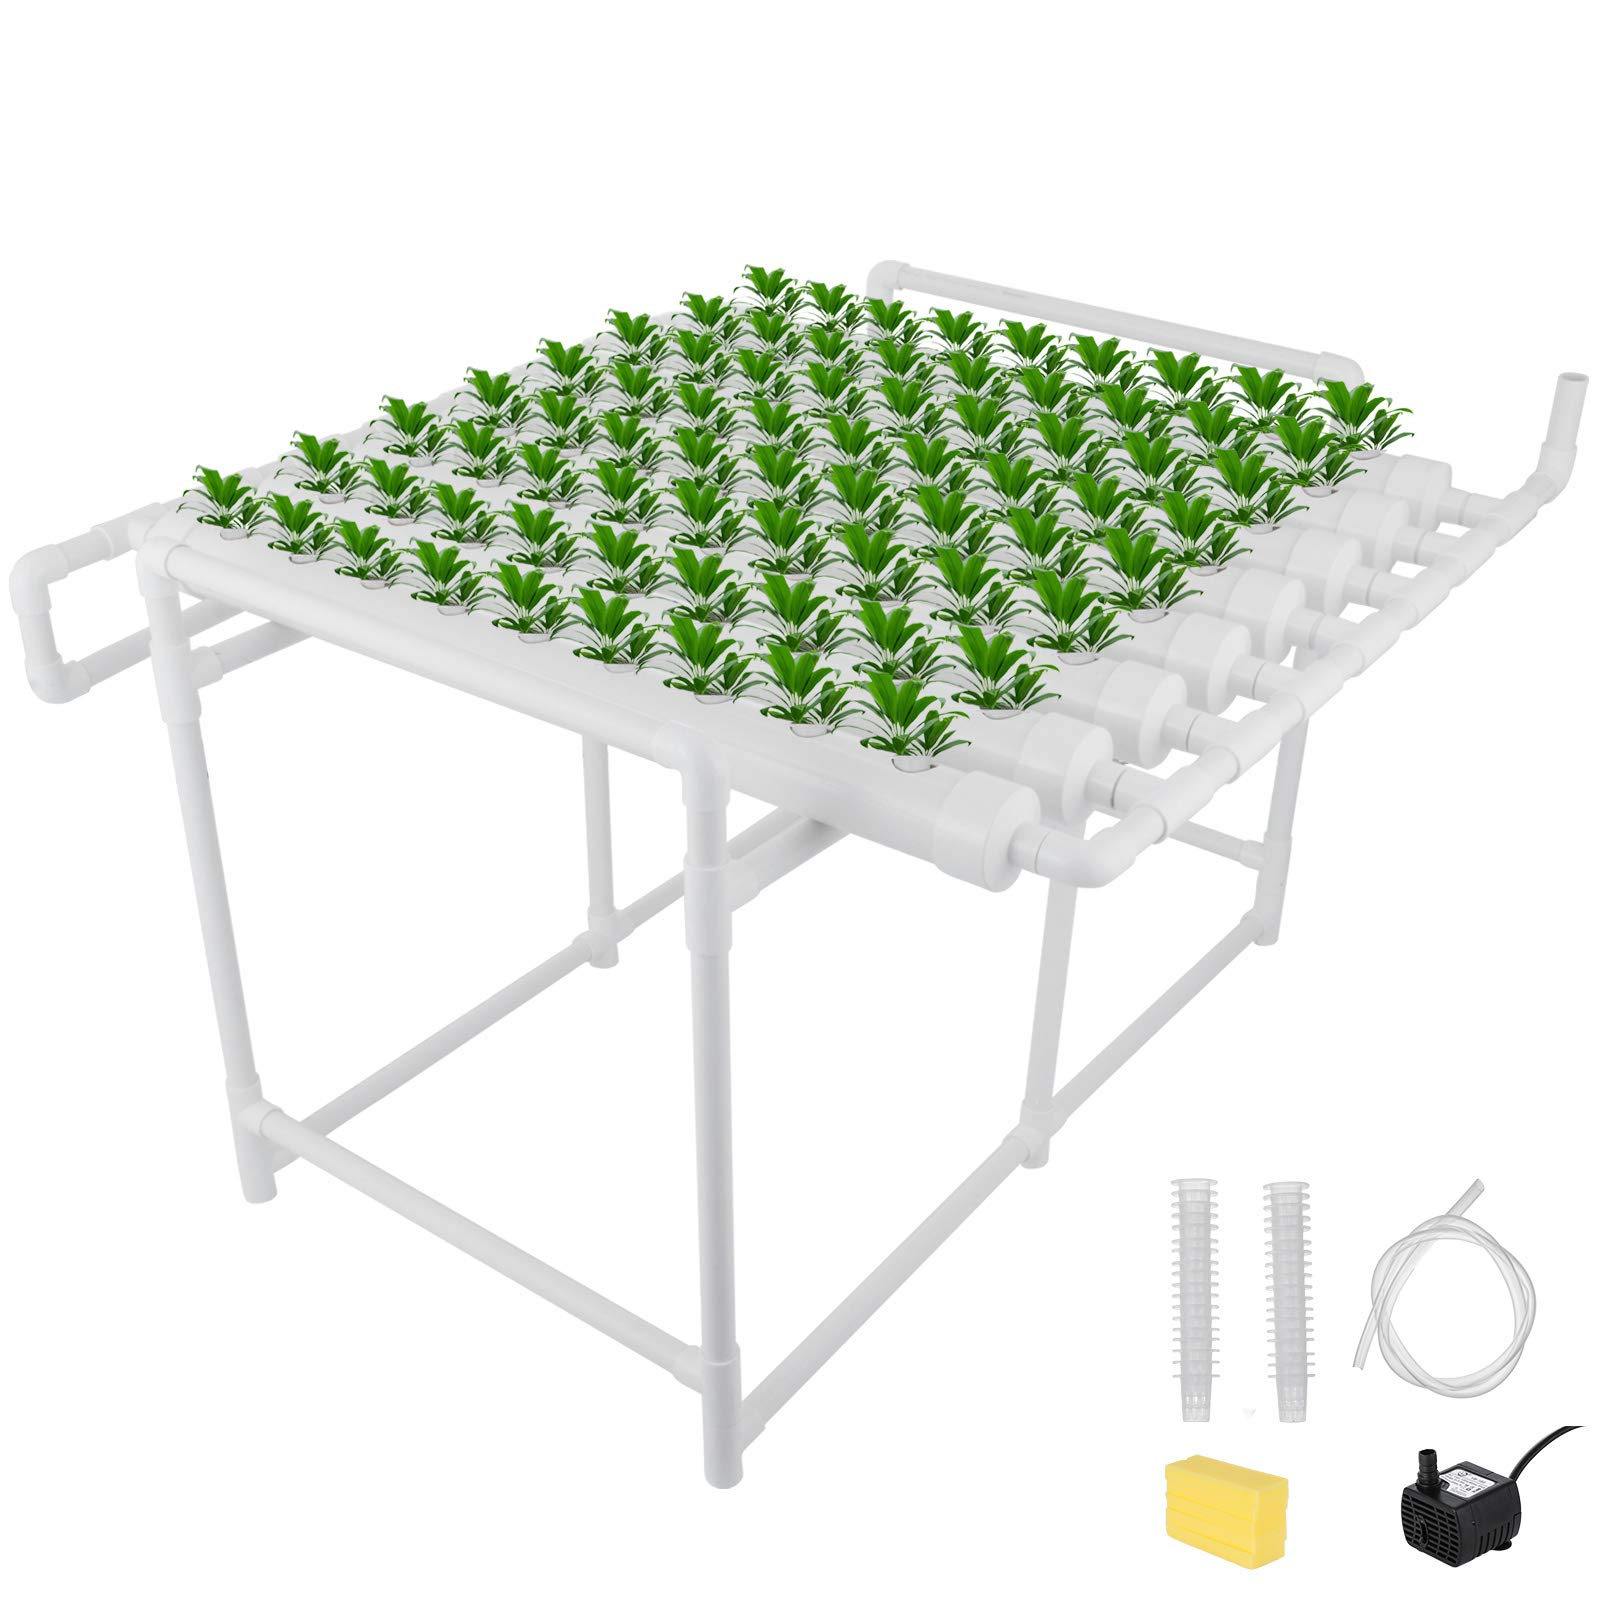 DreamJoy Hydroponic Grow Kit 72 Sites 8 Pipe NFT PVC Hydroponic Pipe Home Balcony Garden Grow Kit Hydroponic Soilless Plant Growing Systems Vegetable Planting Grow Kit (72Site 8Pipe) by DreamJoy